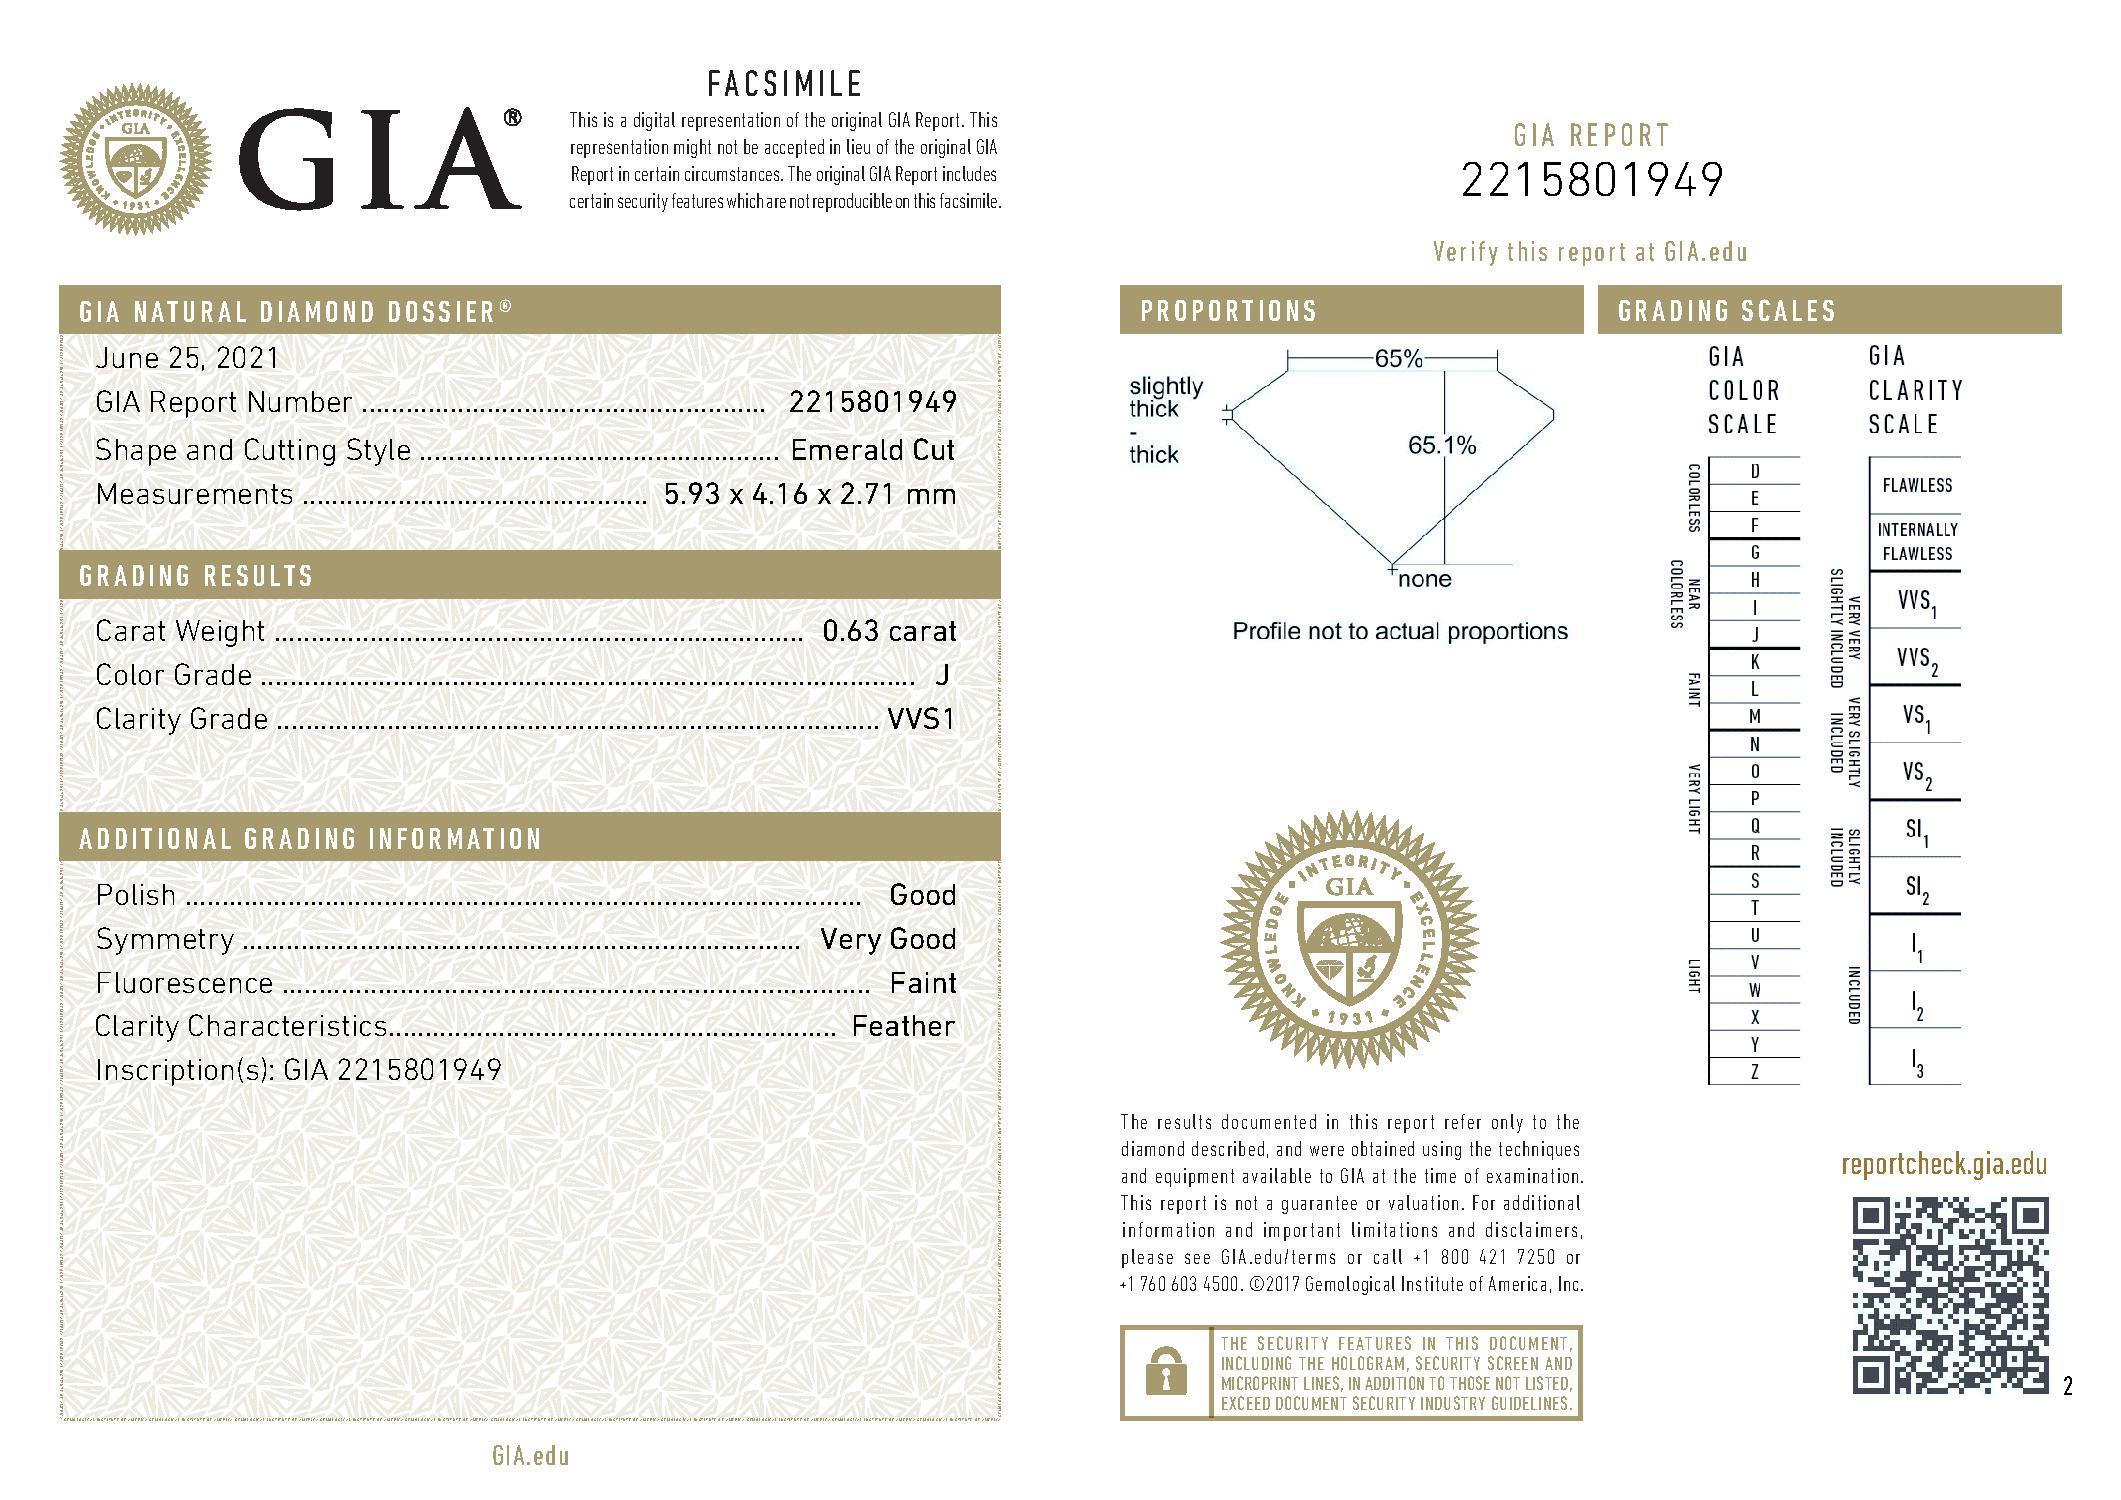 This is a 0.63 carat emerald shape, J color, VVS1 clarity natural diamond accompanied by a GIA grading report.